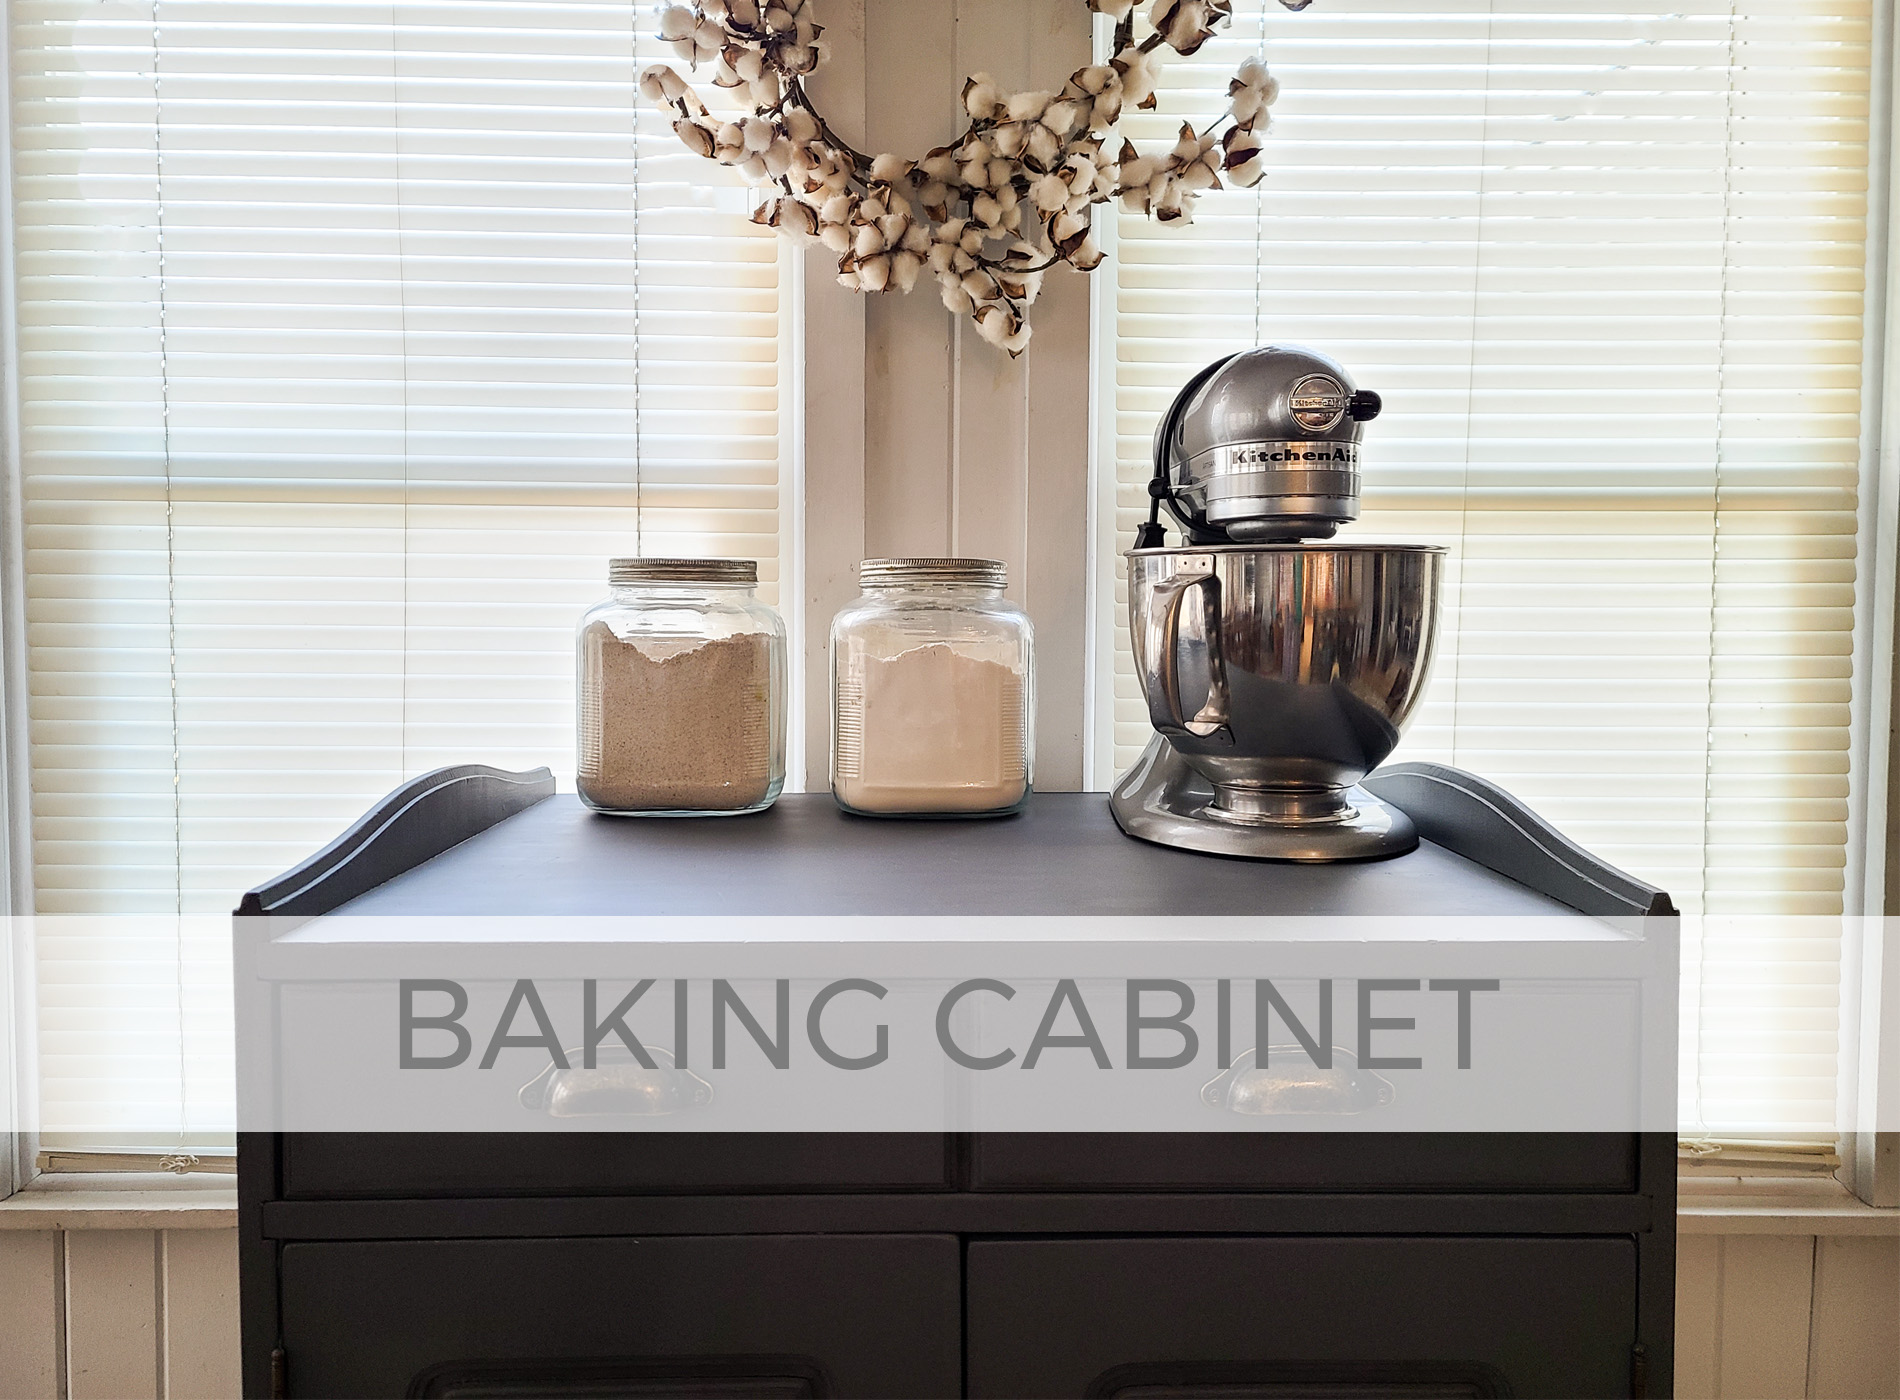 Farmhouse Baking Cabinet Makeover by Larissa of Prodigal Pieces | prodigalpieces.com #prodigalpieces